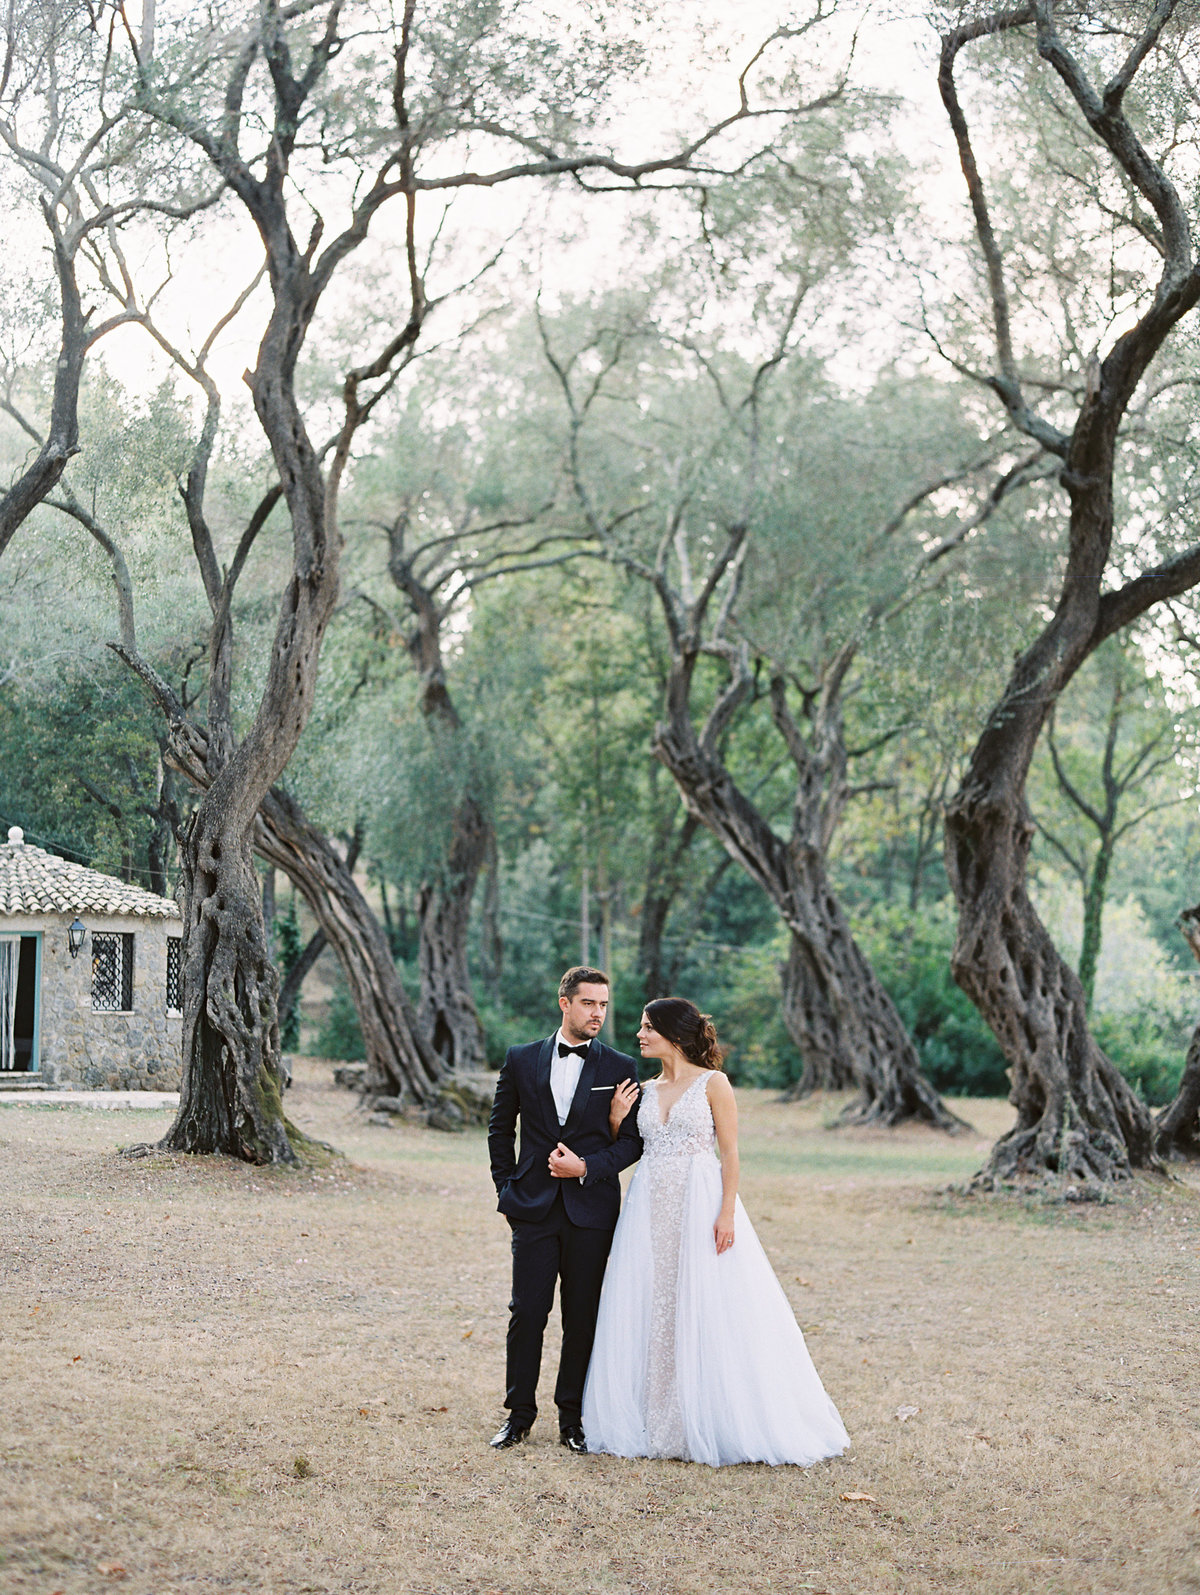 fine art wedding photography in corfu by Kostis Mouselimis on film_054